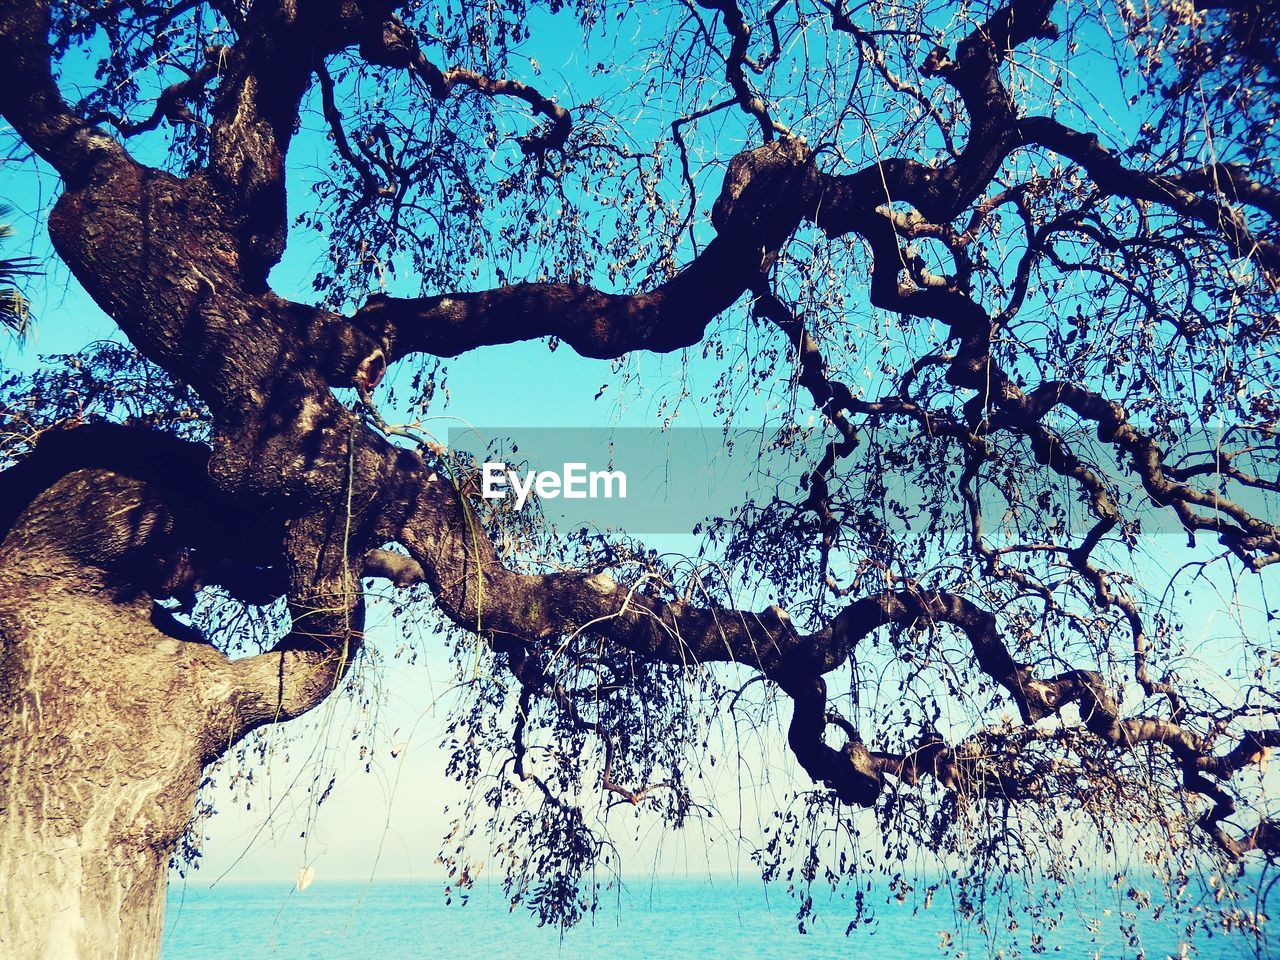 tree, branch, nature, tree trunk, tranquility, water, beauty in nature, outdoors, day, scenics, no people, blue, growth, bare tree, sea, sky, close-up